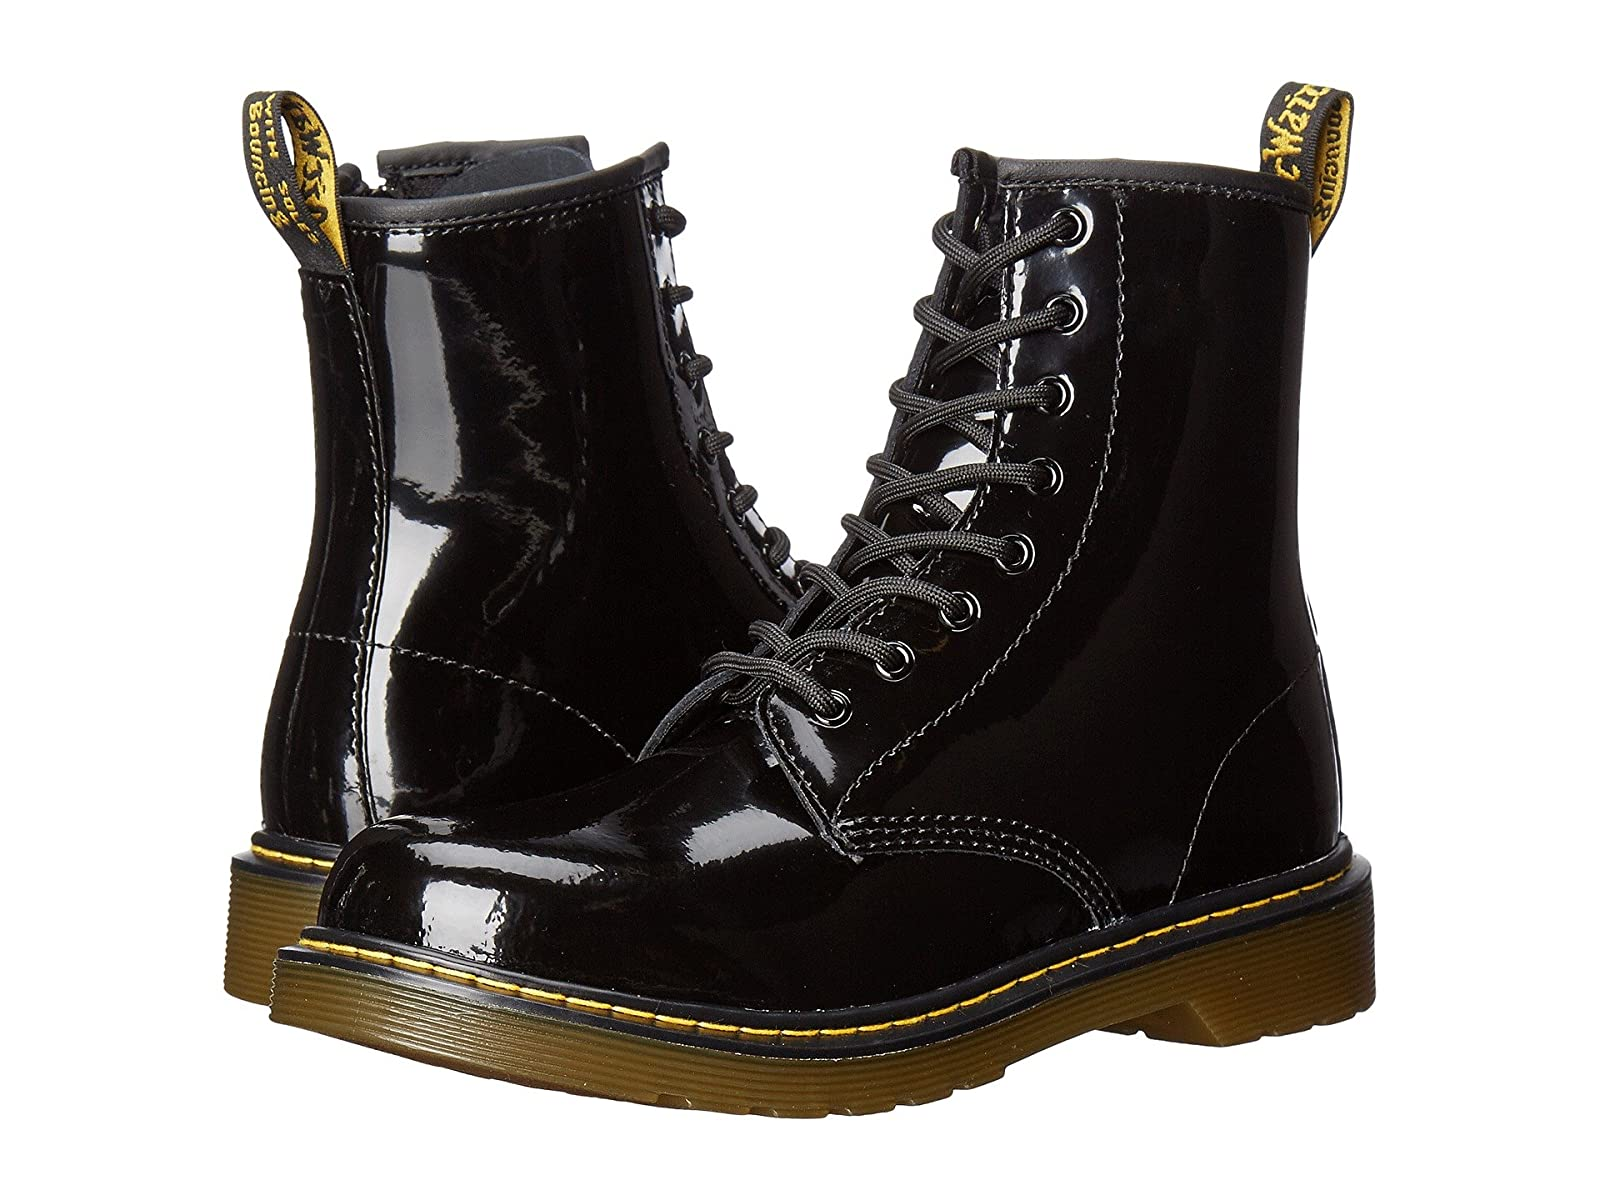 Dr. Martens Kid's Collection 1460 Youth Delaney Boot (Big Kid)Affordable and distinctive shoes